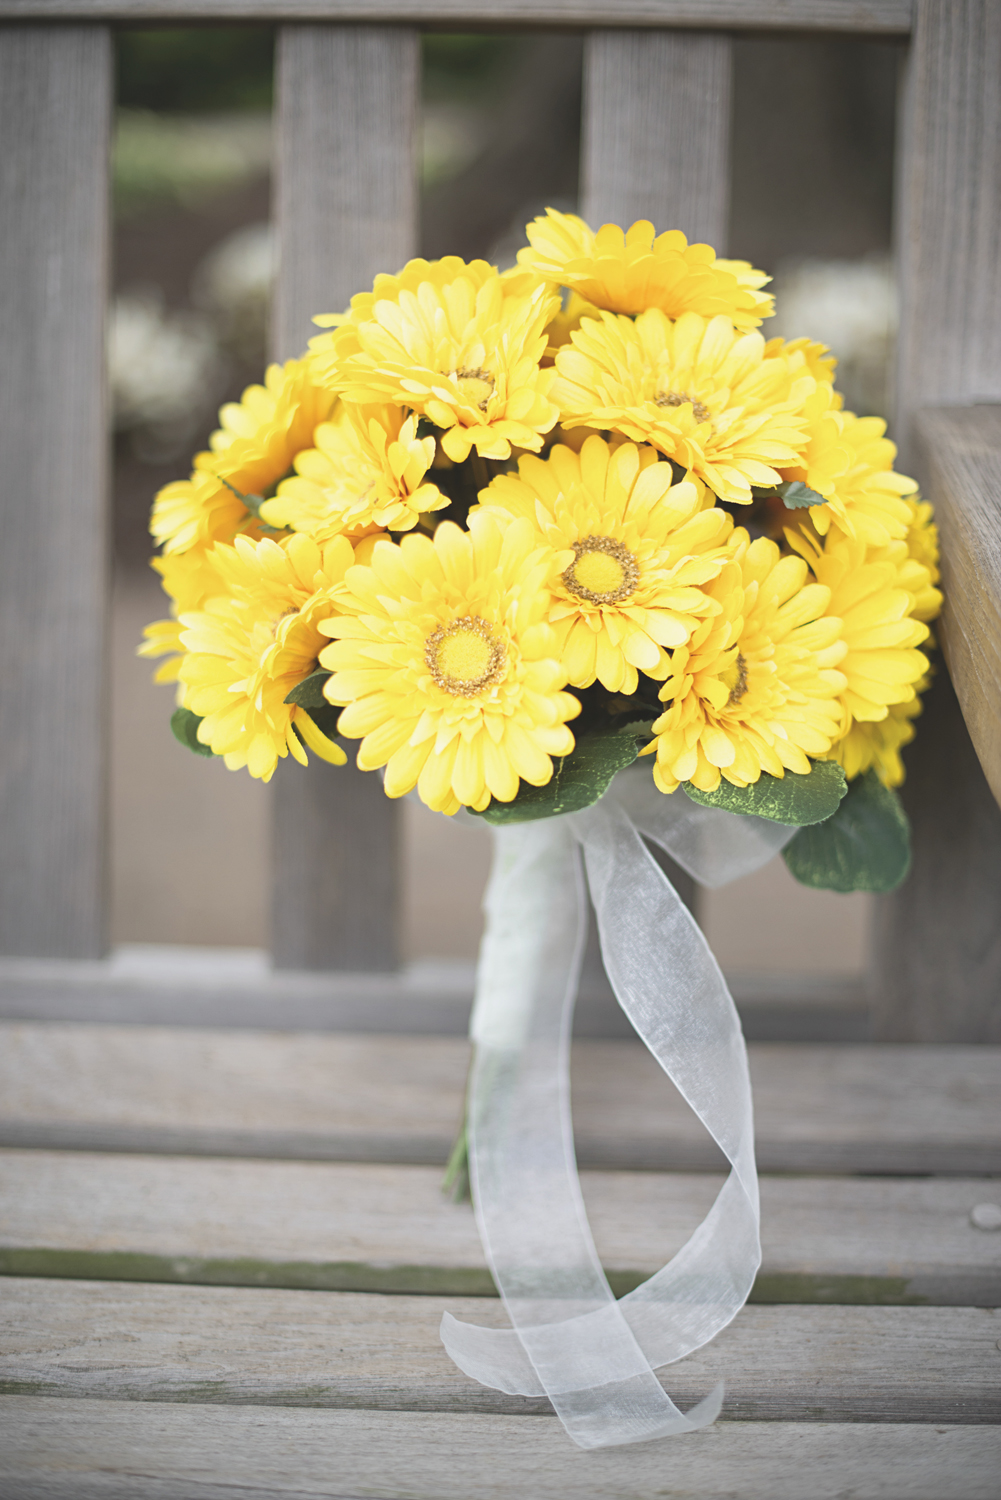 Mariners Museum Wedding | Newport News, Virginia | Yellow daisy bridal bouquet